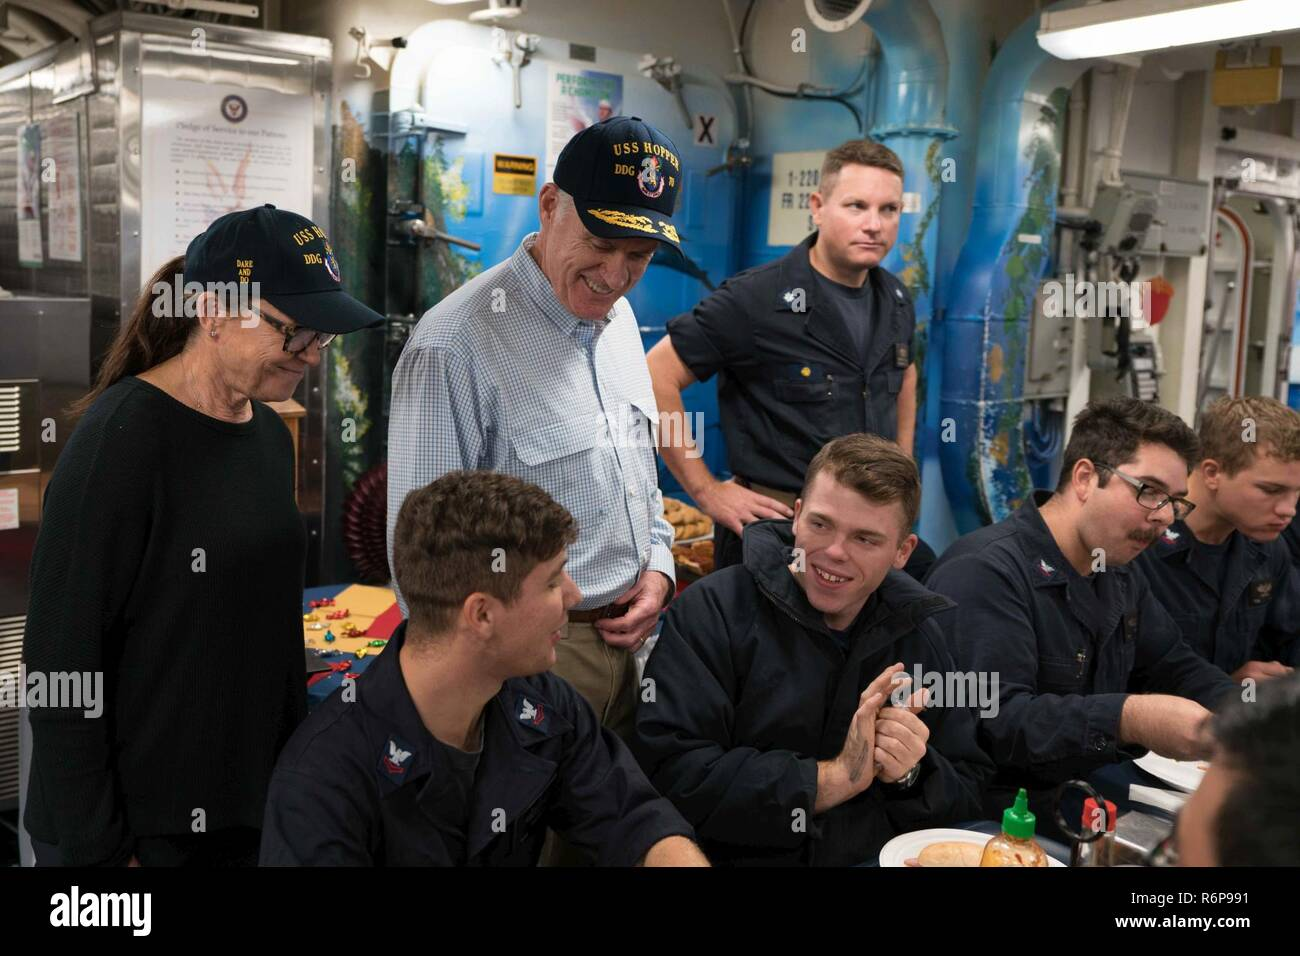 ARABIAN GULF (Nov. 23, 2017) Secretary of the Navy (SECNAV) Richard V. Spencer (center), and his wife, Sarah Pauline Spencer, meet with crewmembers of the Arleigh Burke-class guided-missile destroyer USS Hopper (DDG 70) on the ship's mess decks during the SECNAV's visit to the ship on Thanksgiving Day. Hopper is deployed to the U.S. 5th Fleet area of operations in support of maritime security operations to reassure allies and partners and preserve the freedom of navigation and the free flow of commerce in the region. - Stock Image